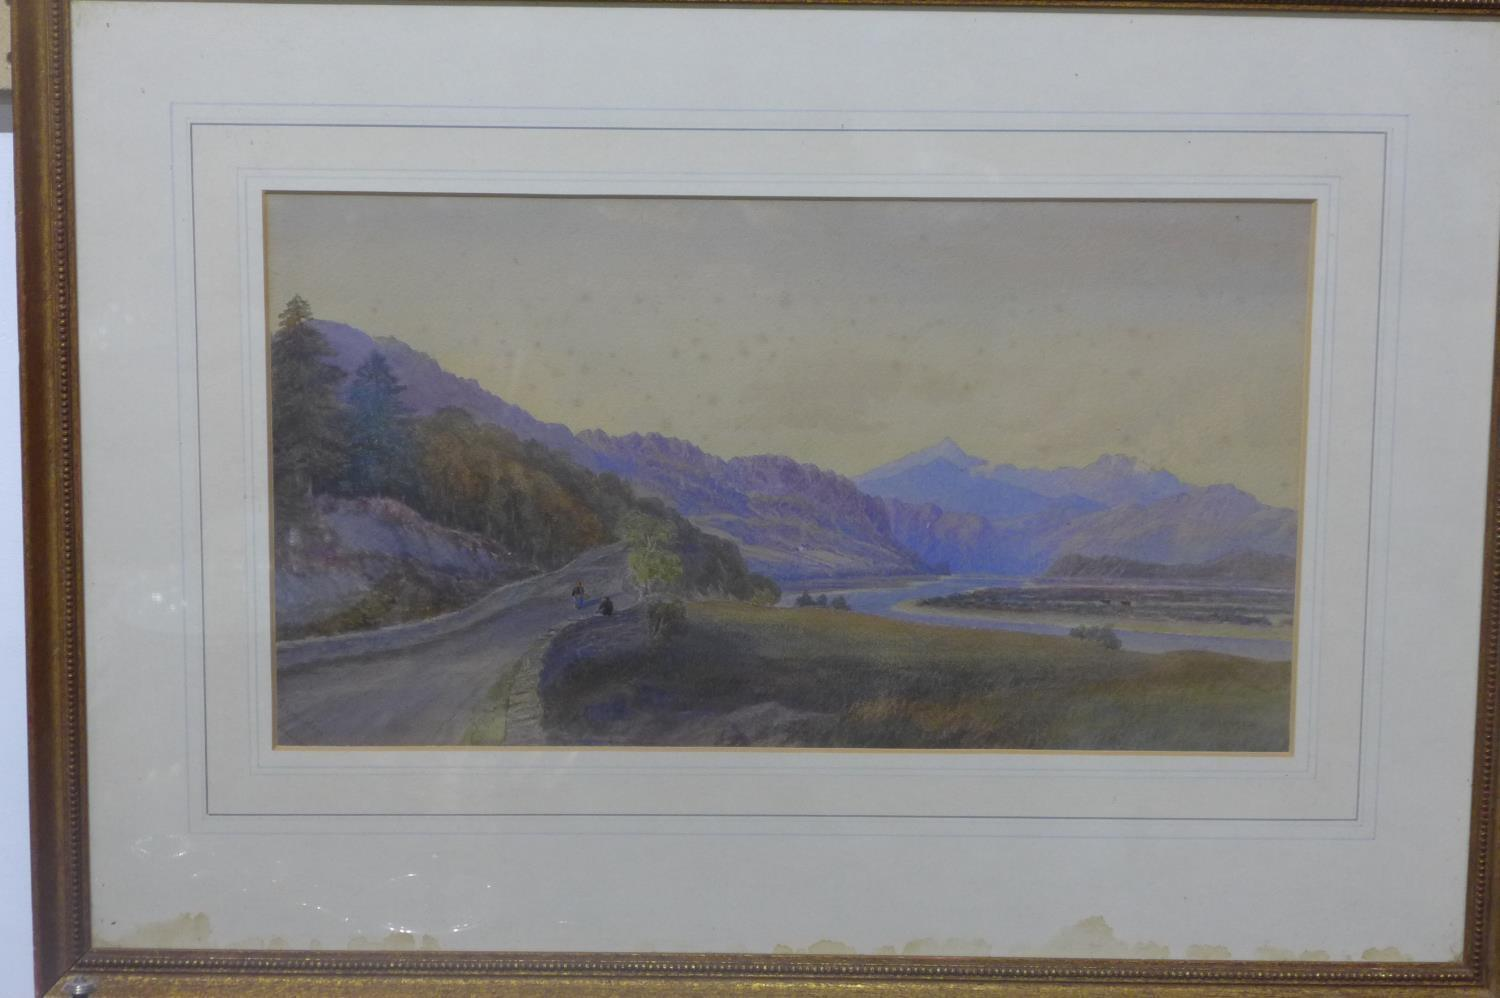 Lot 304 - William Leighton Leitch (British, 1804-1883), two watercolour representing rural landscapes,